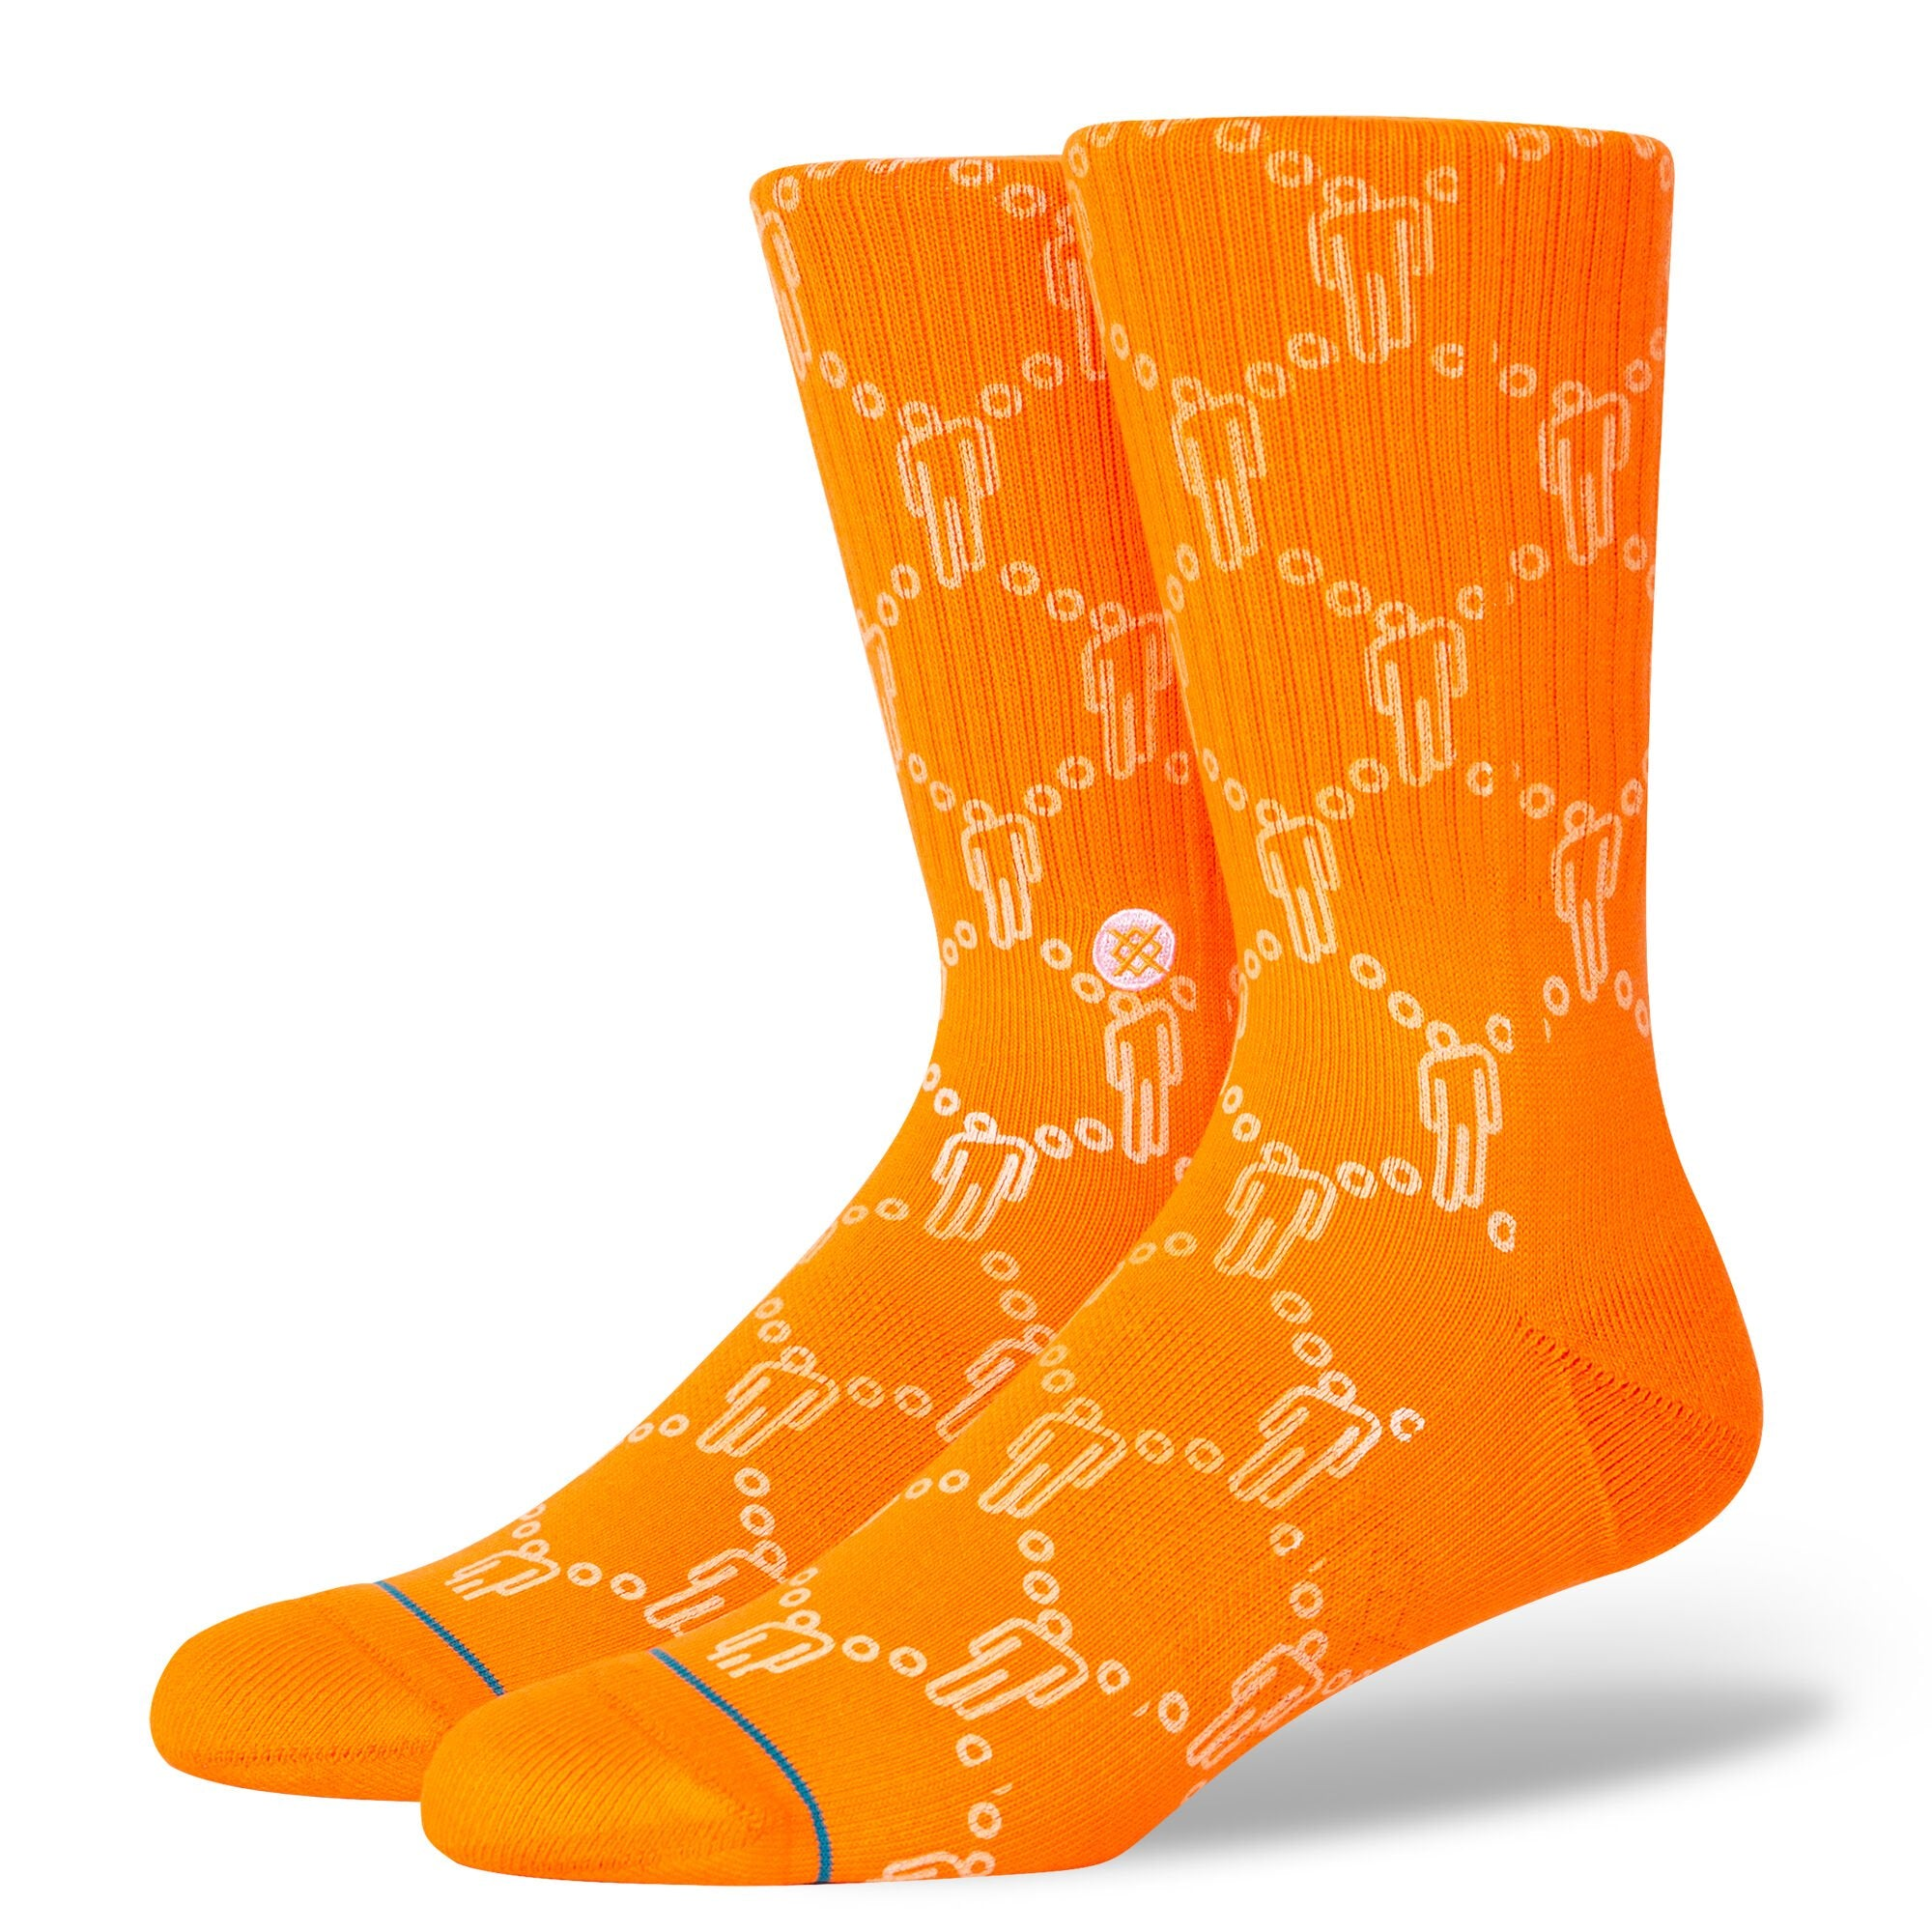 Stance - Billie Eilish: Blohsh Crew Socks | Women's - Knock Your Socks Off